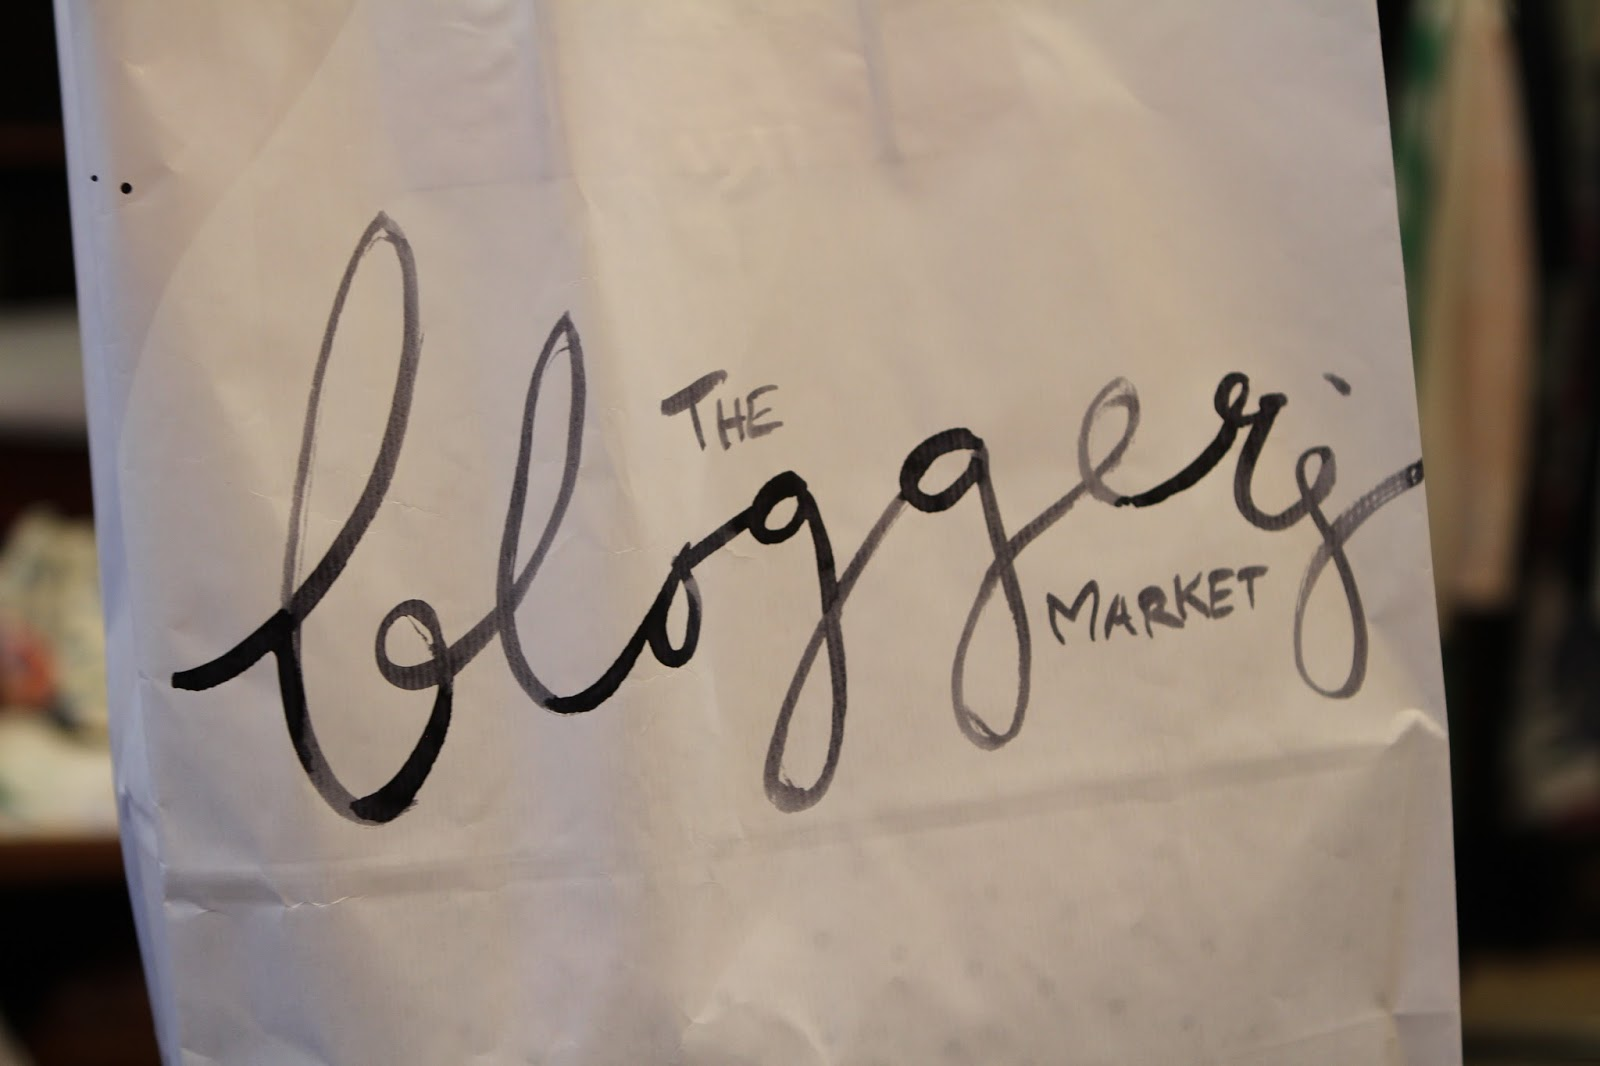 The bloggers market